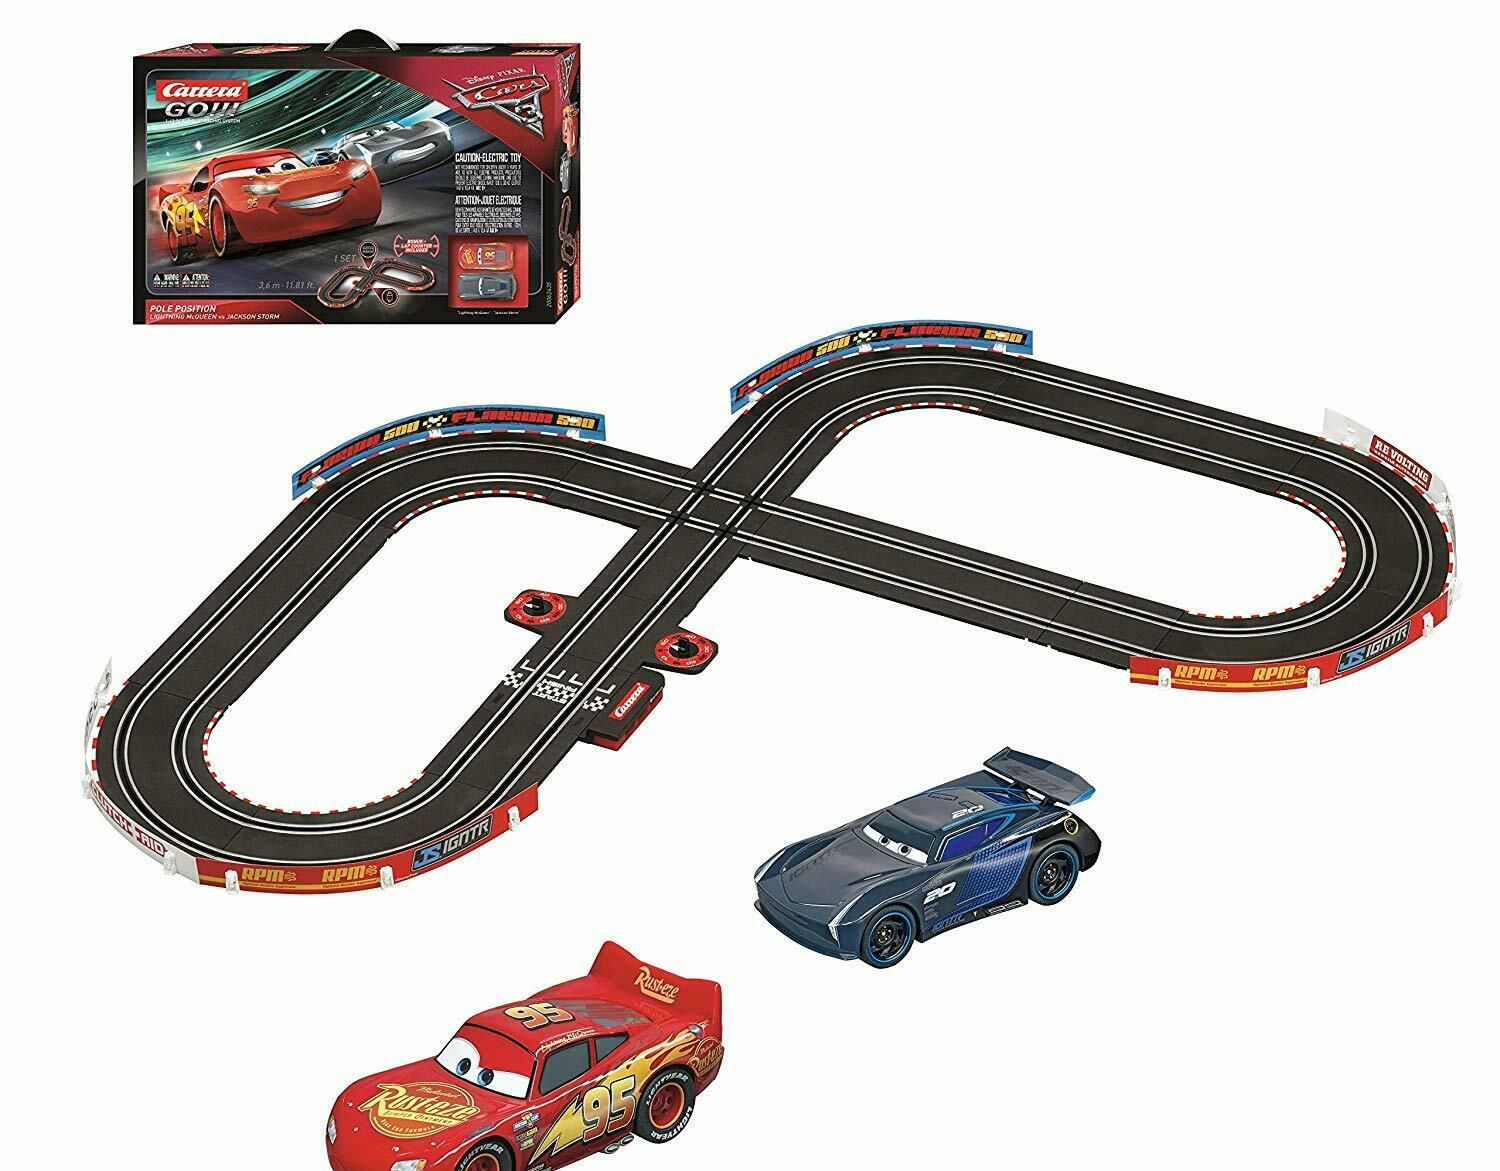 The Disney Pixar Cars 3 Slot Car Track Is Sturdy And Easier To Tug